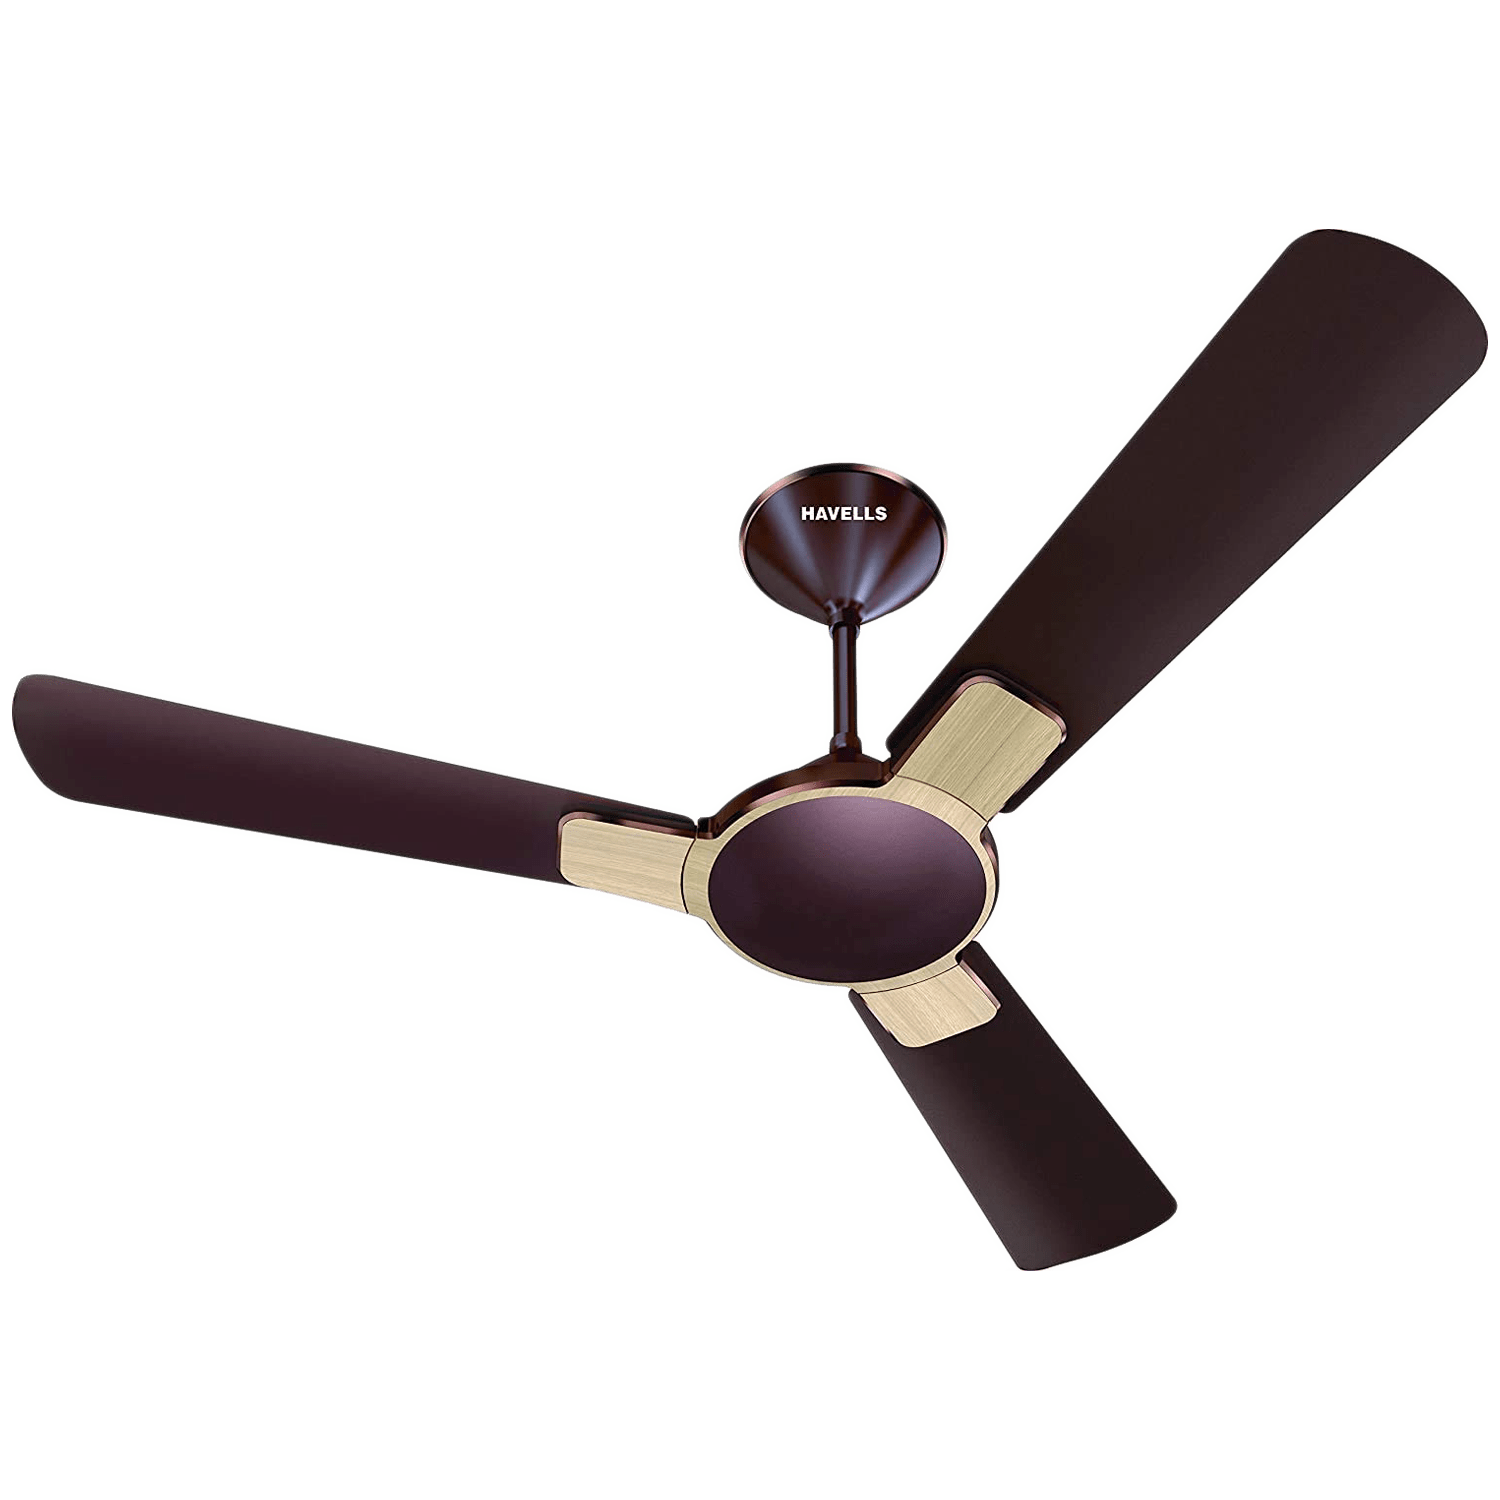 Havells Enticer Wood 120cm Sweep 3 Blade Ceiling Fan (Inverter Compatible, FHCEWSTOAK48, Oakwood)